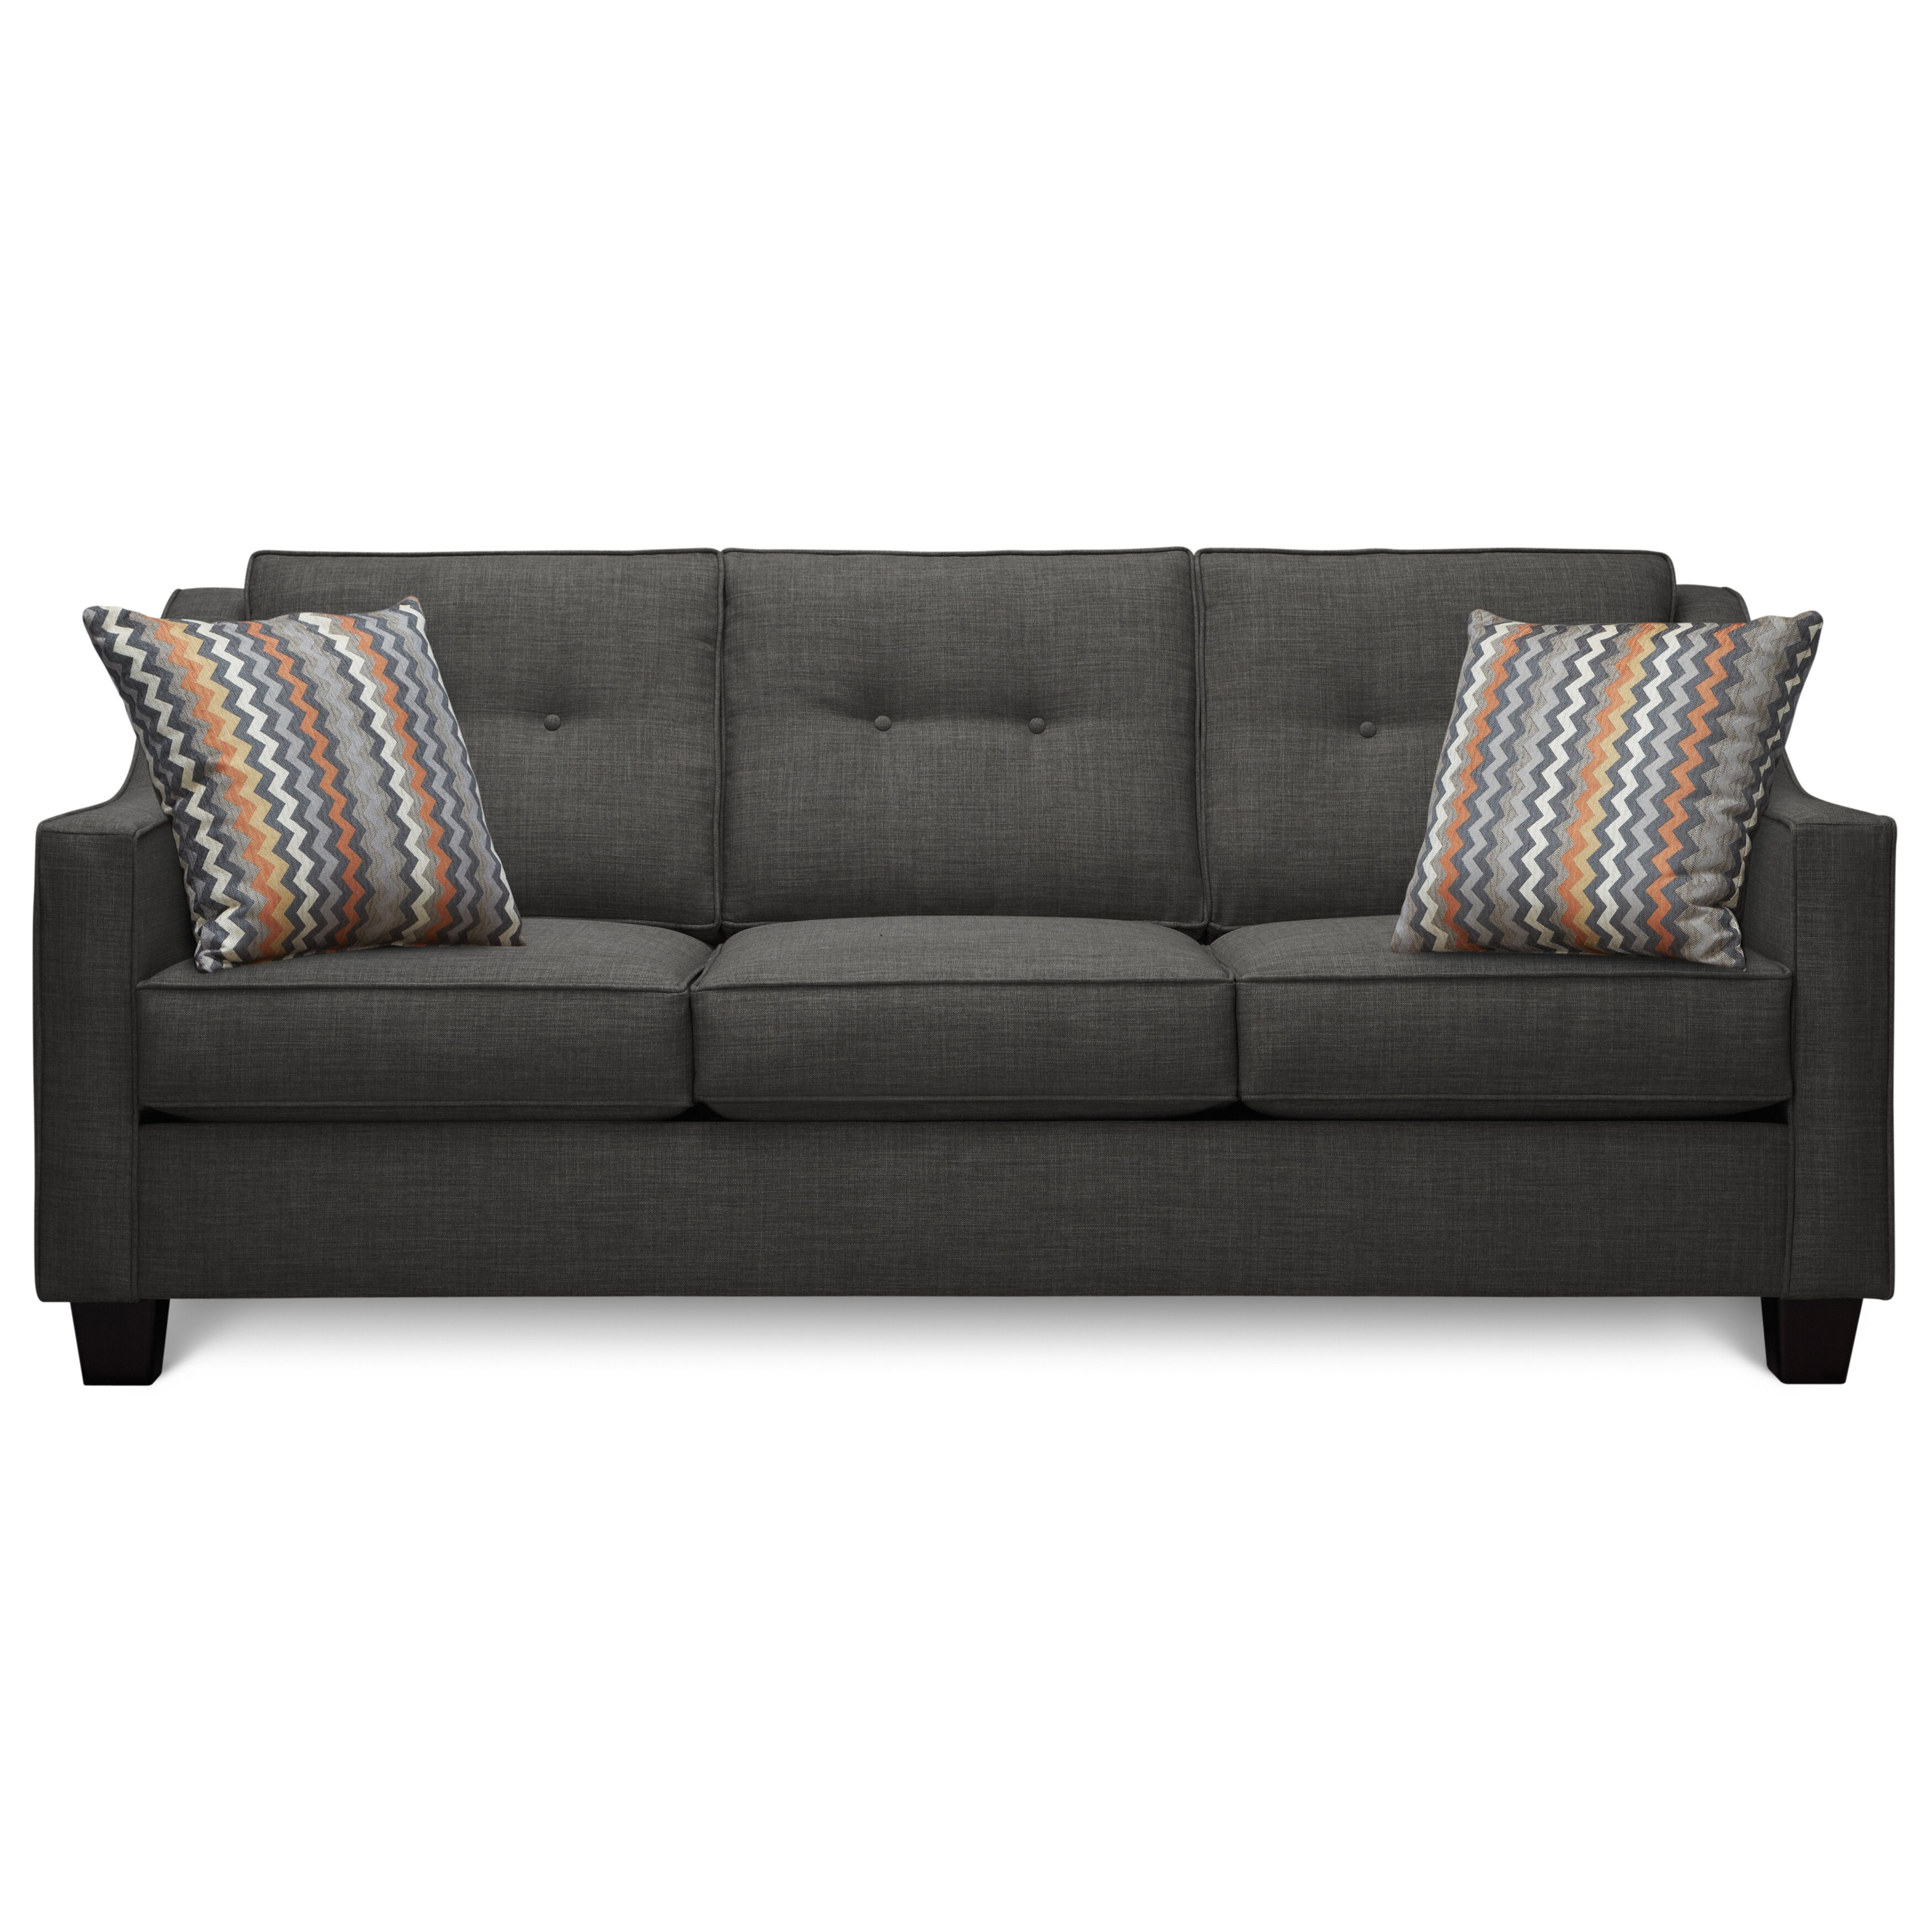 madeline sofa art van miramar table fidelity charcoal with 2 reaction haze accent